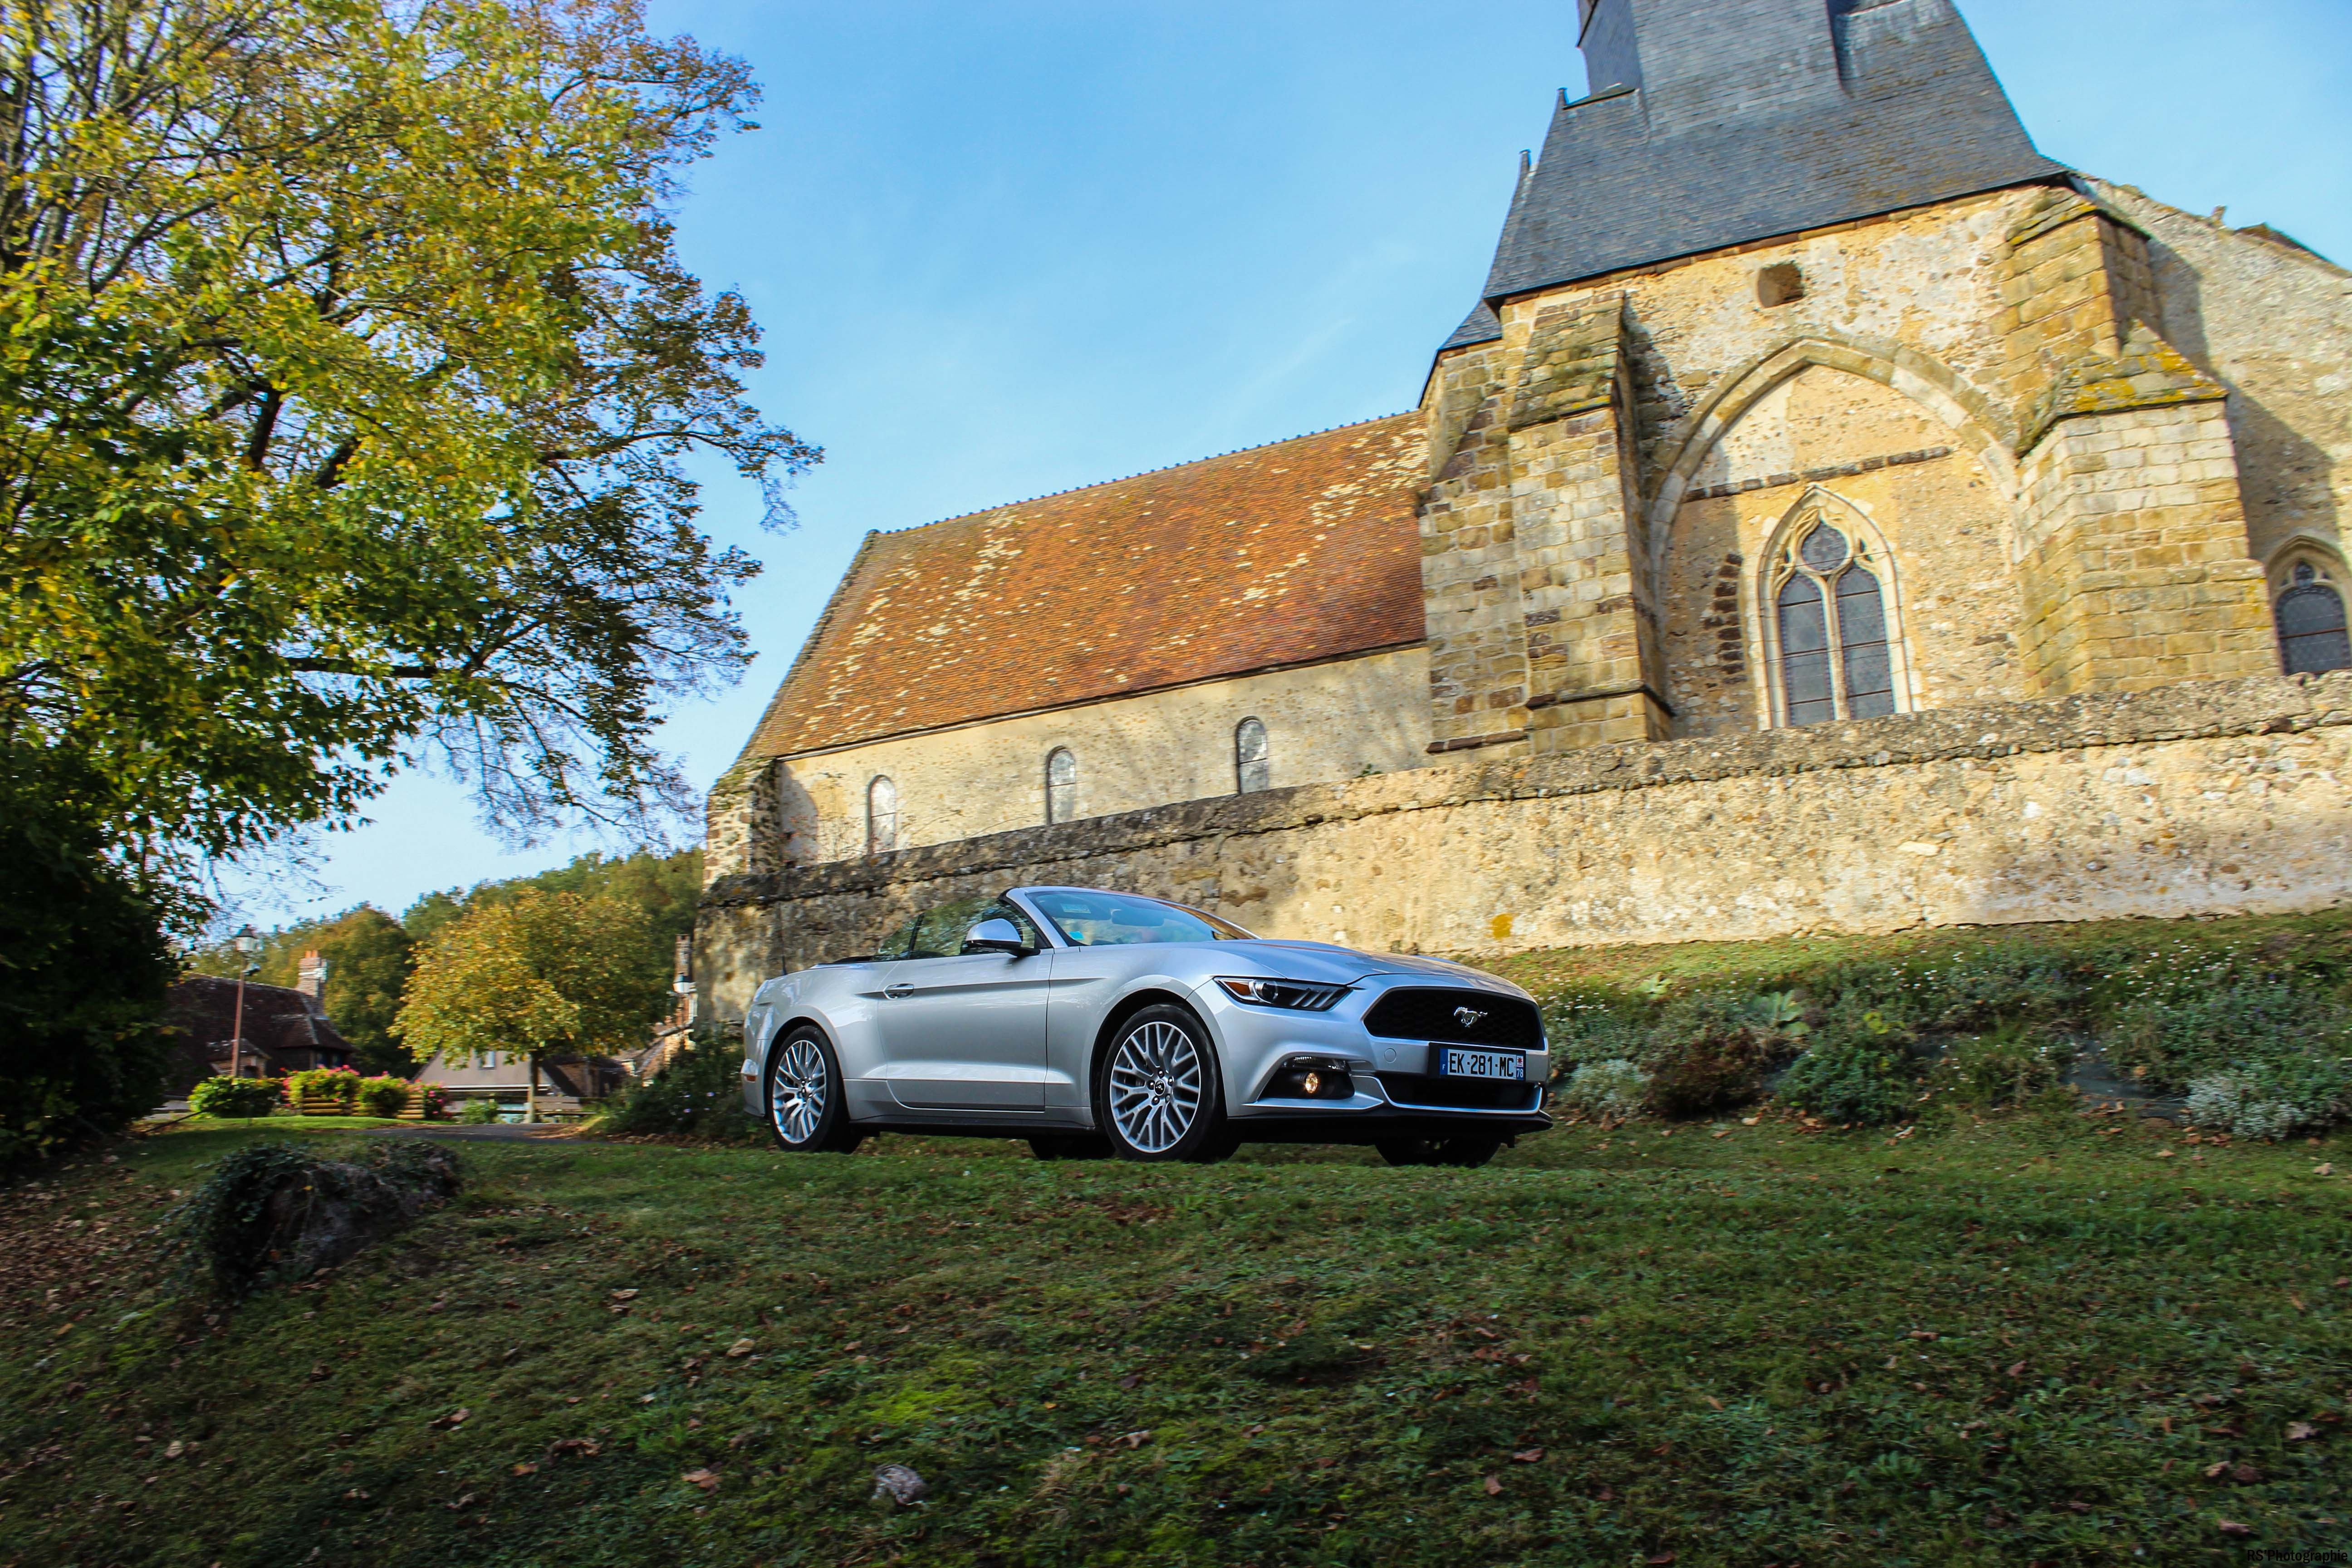 fordmustangeconvertible76-ford-mustang-convertible-ecoboost-profil-side-Arnaud Demasier-RSPhotographie